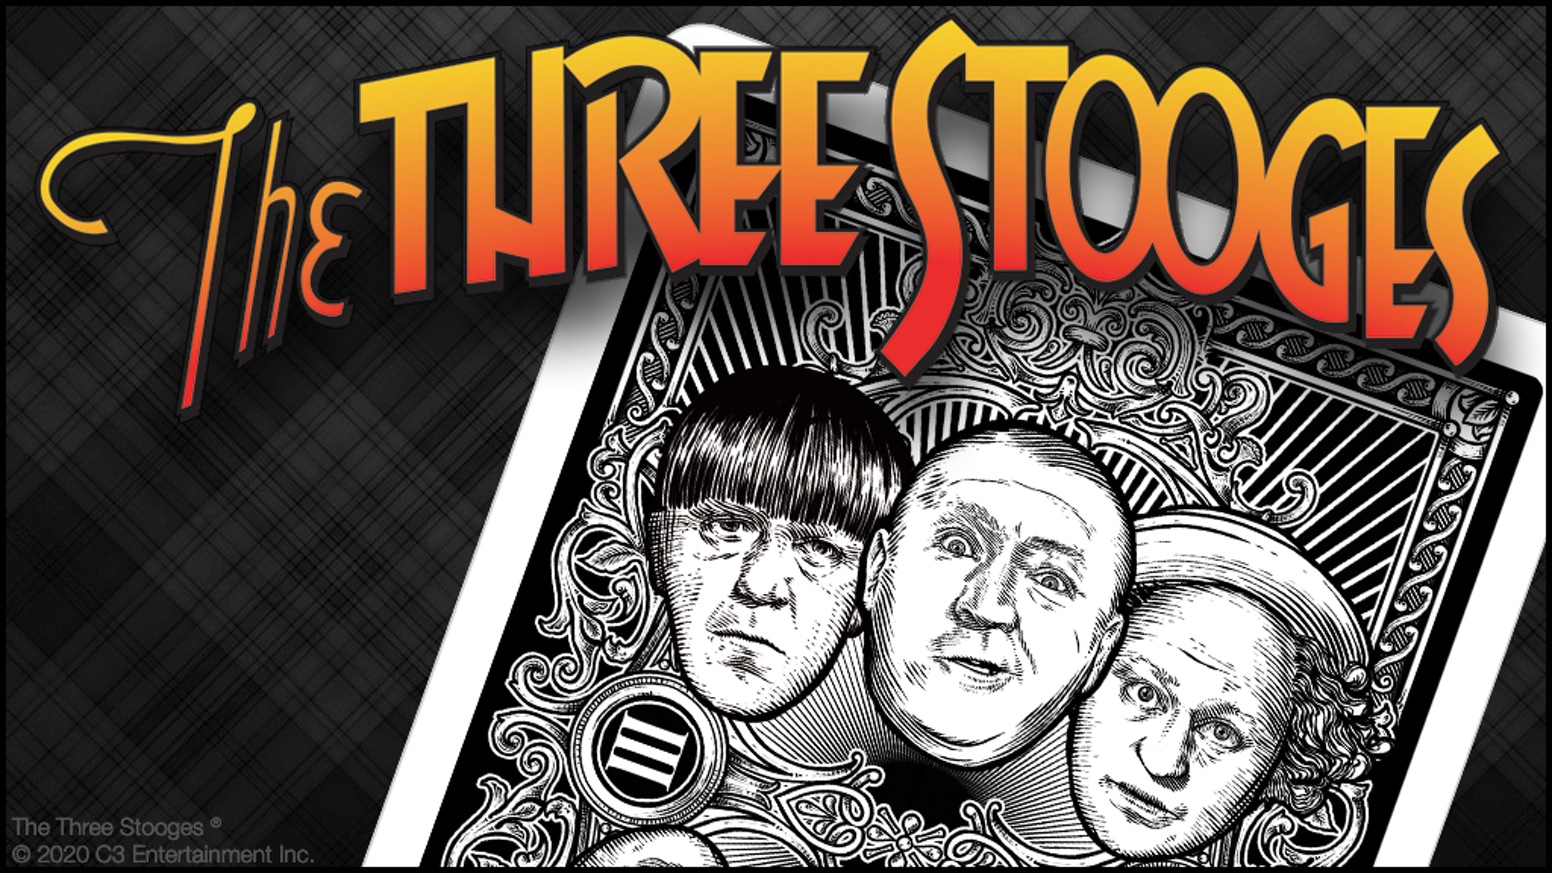 A deck of officially licensed, collectable playing cards commemorating comedy film & TV legends The Three Stooges® printed in the USA.